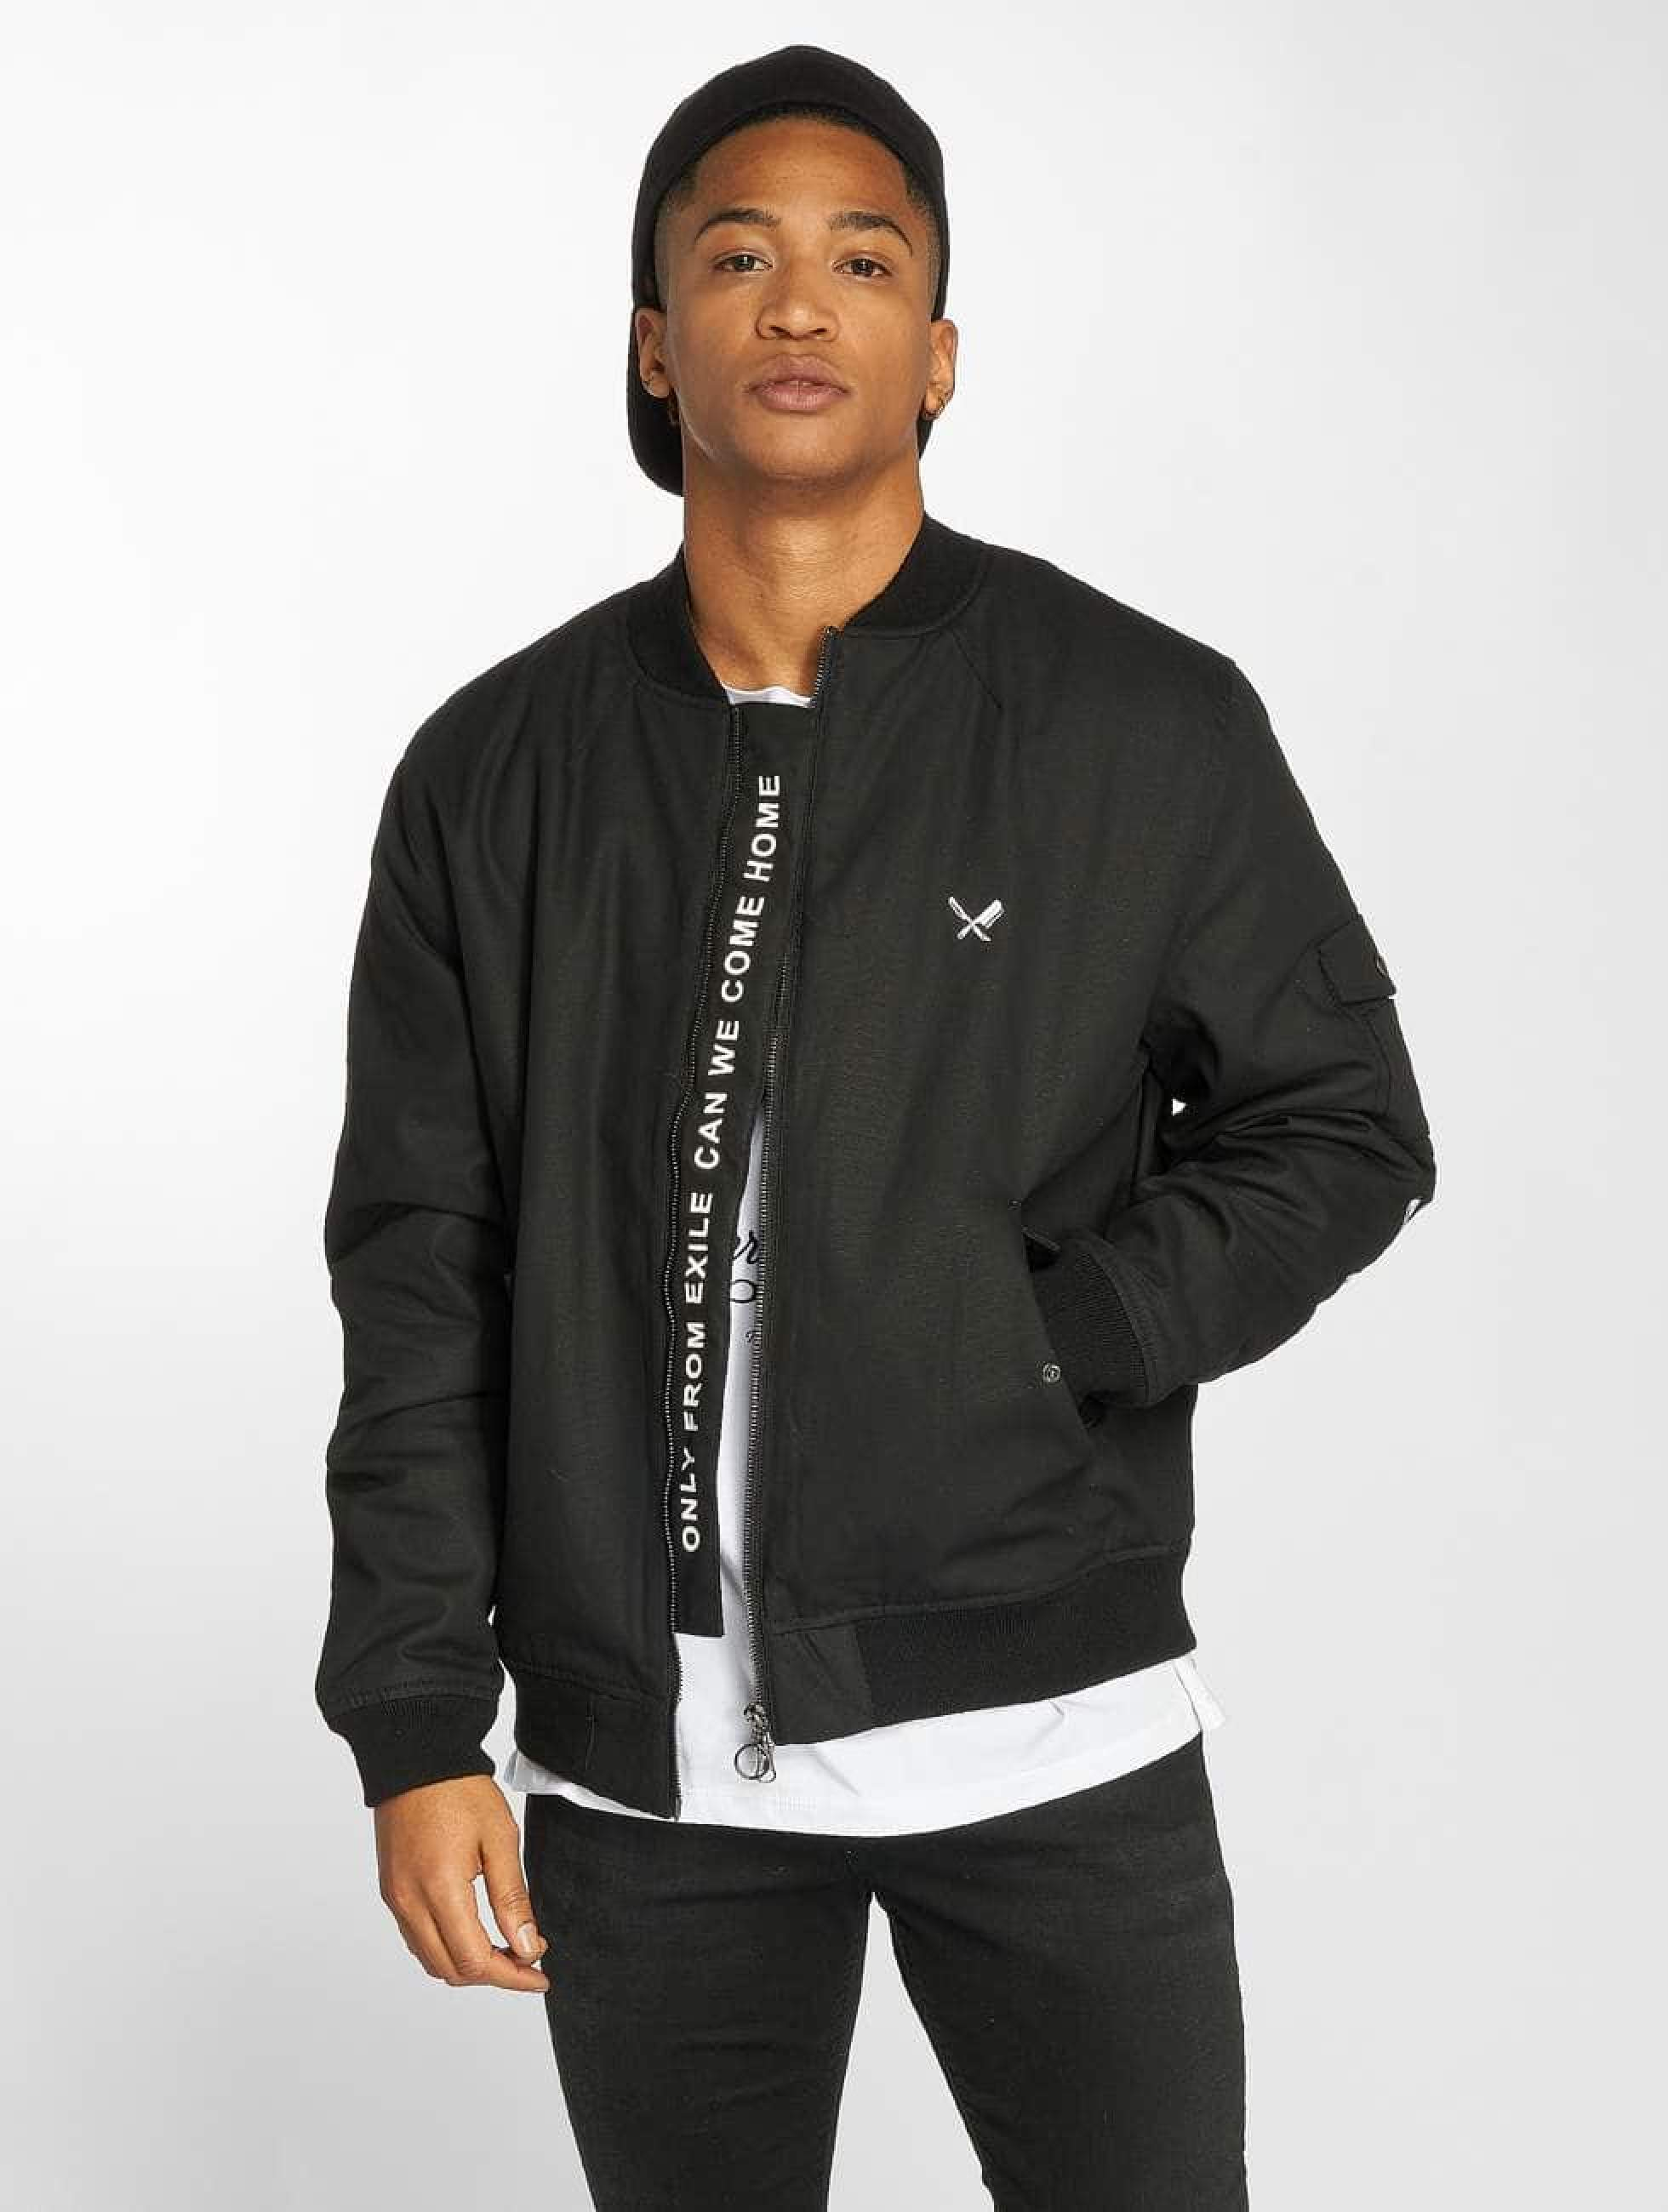 Distorted People | Black Tribe Patched noir Homme Bomber